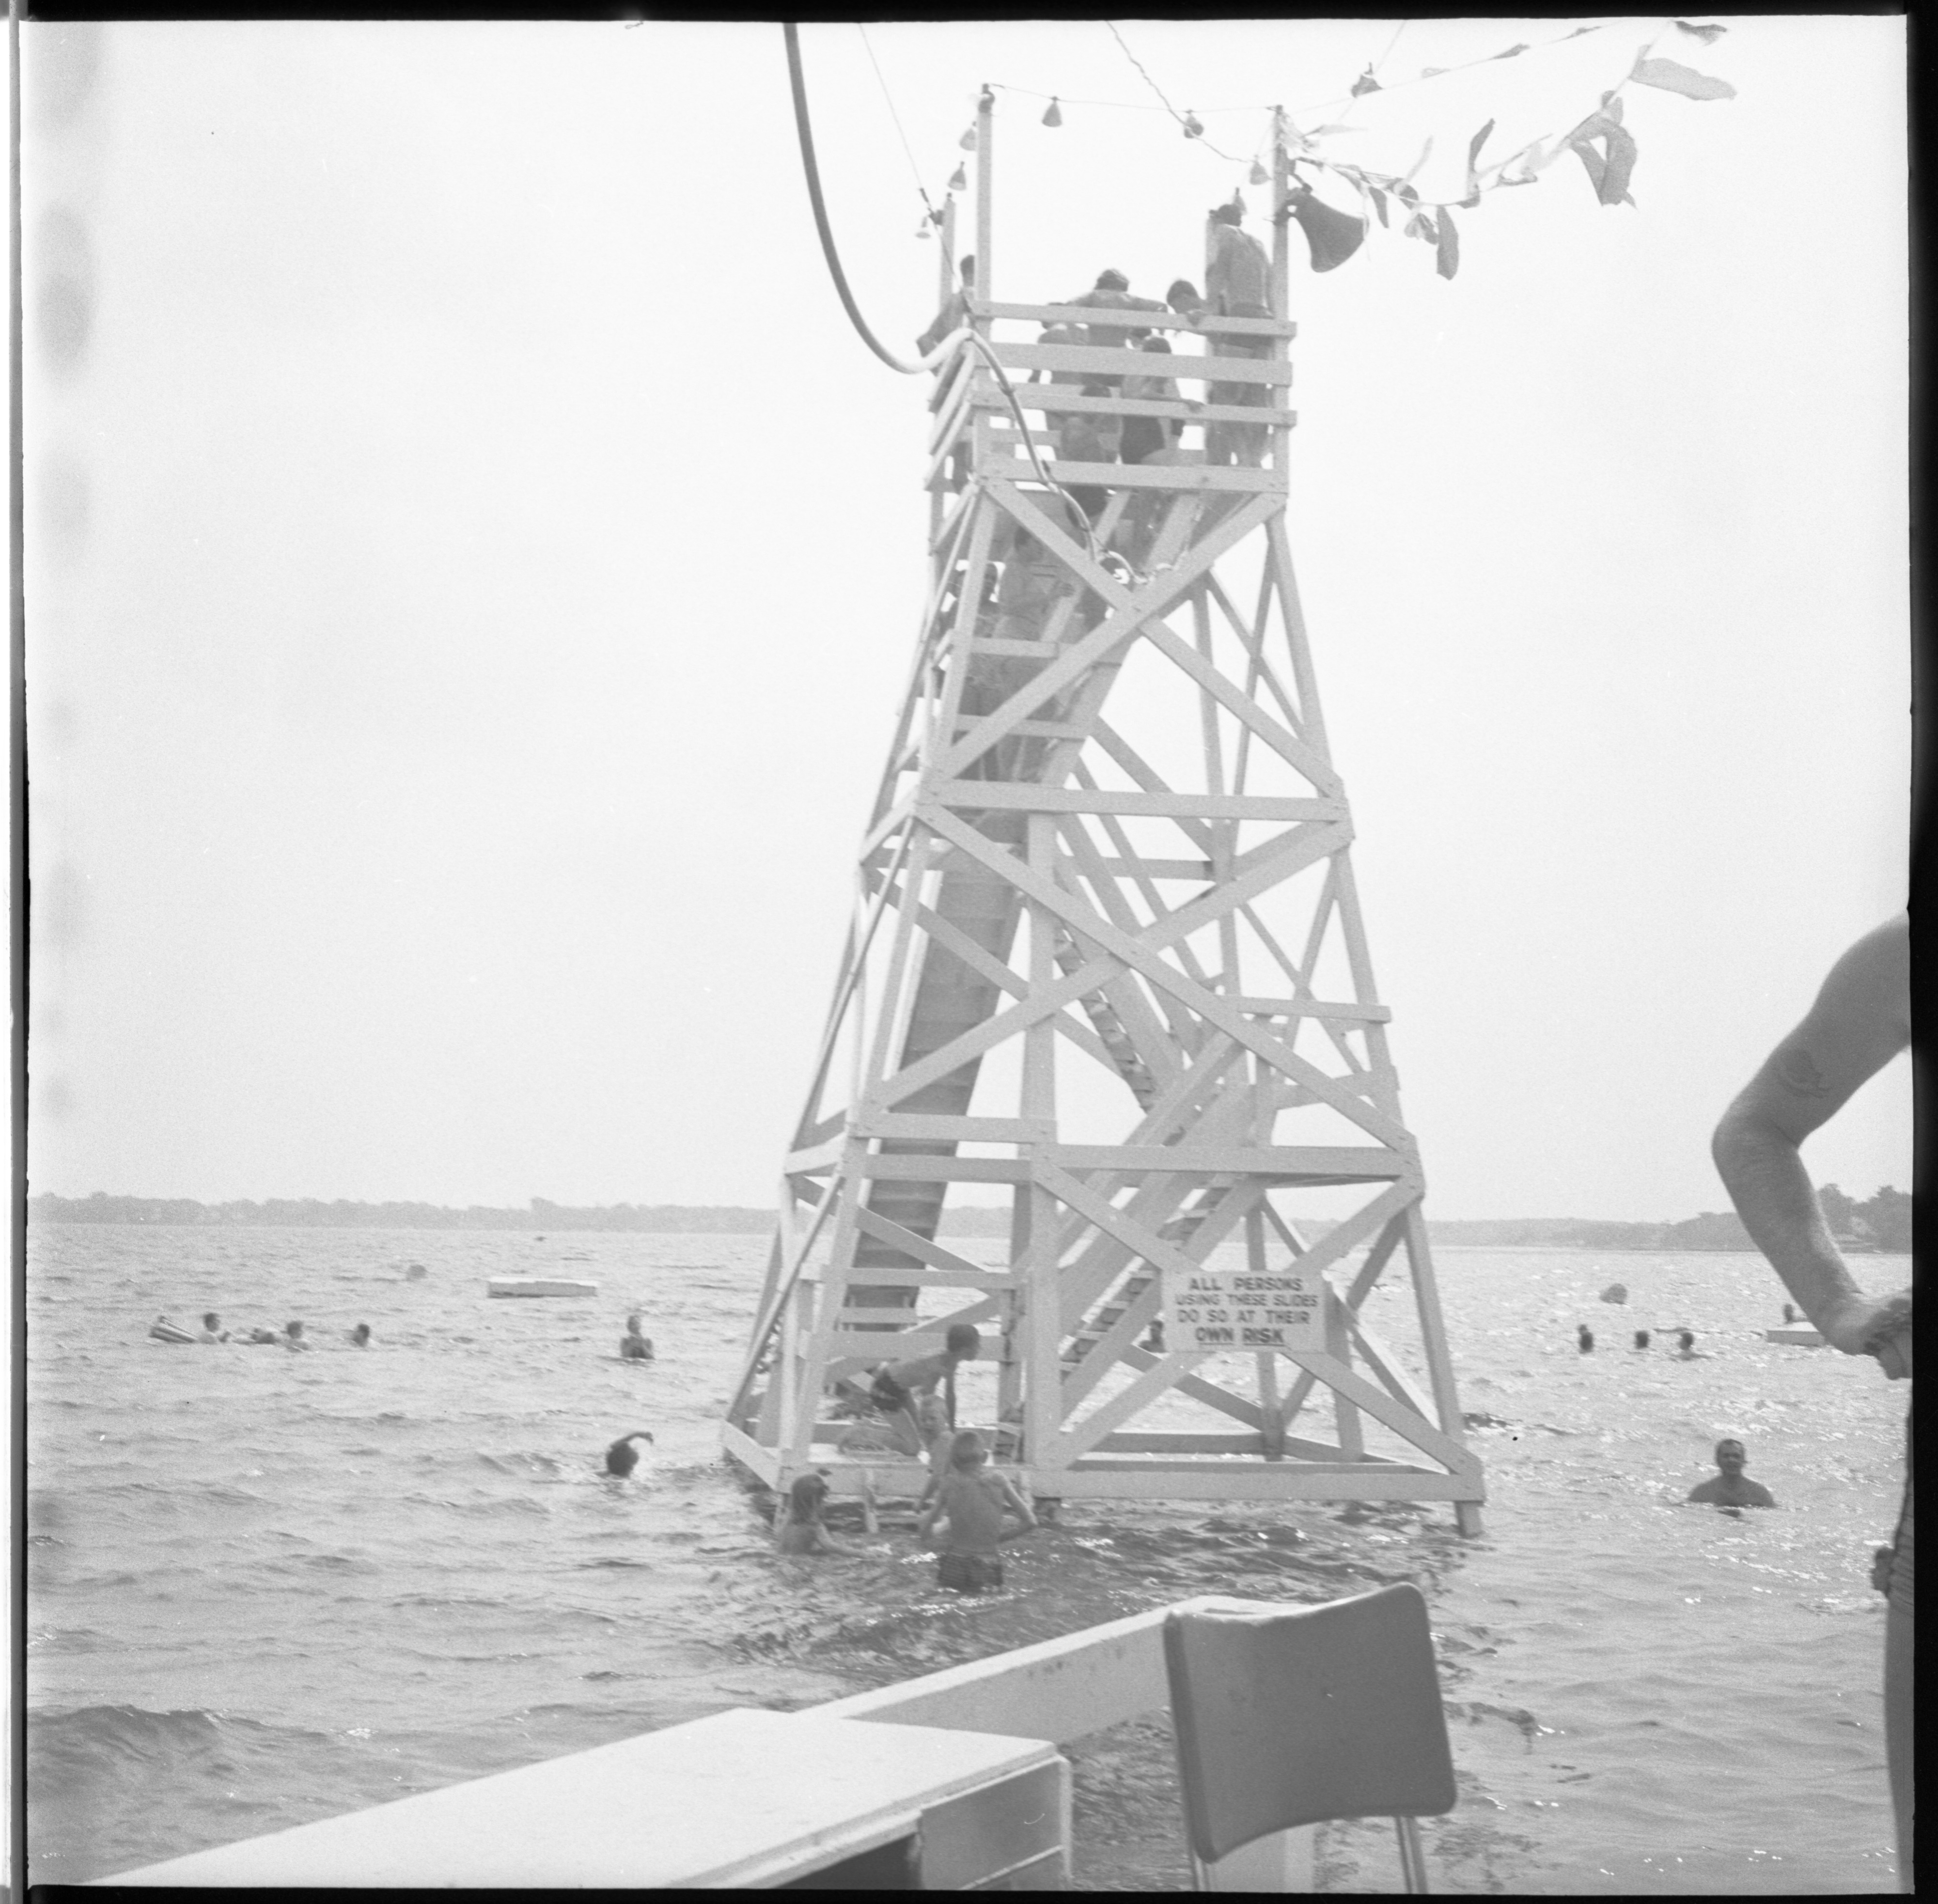 Groome's Beach Water Slide - Whitmore Lake, July 1963 image